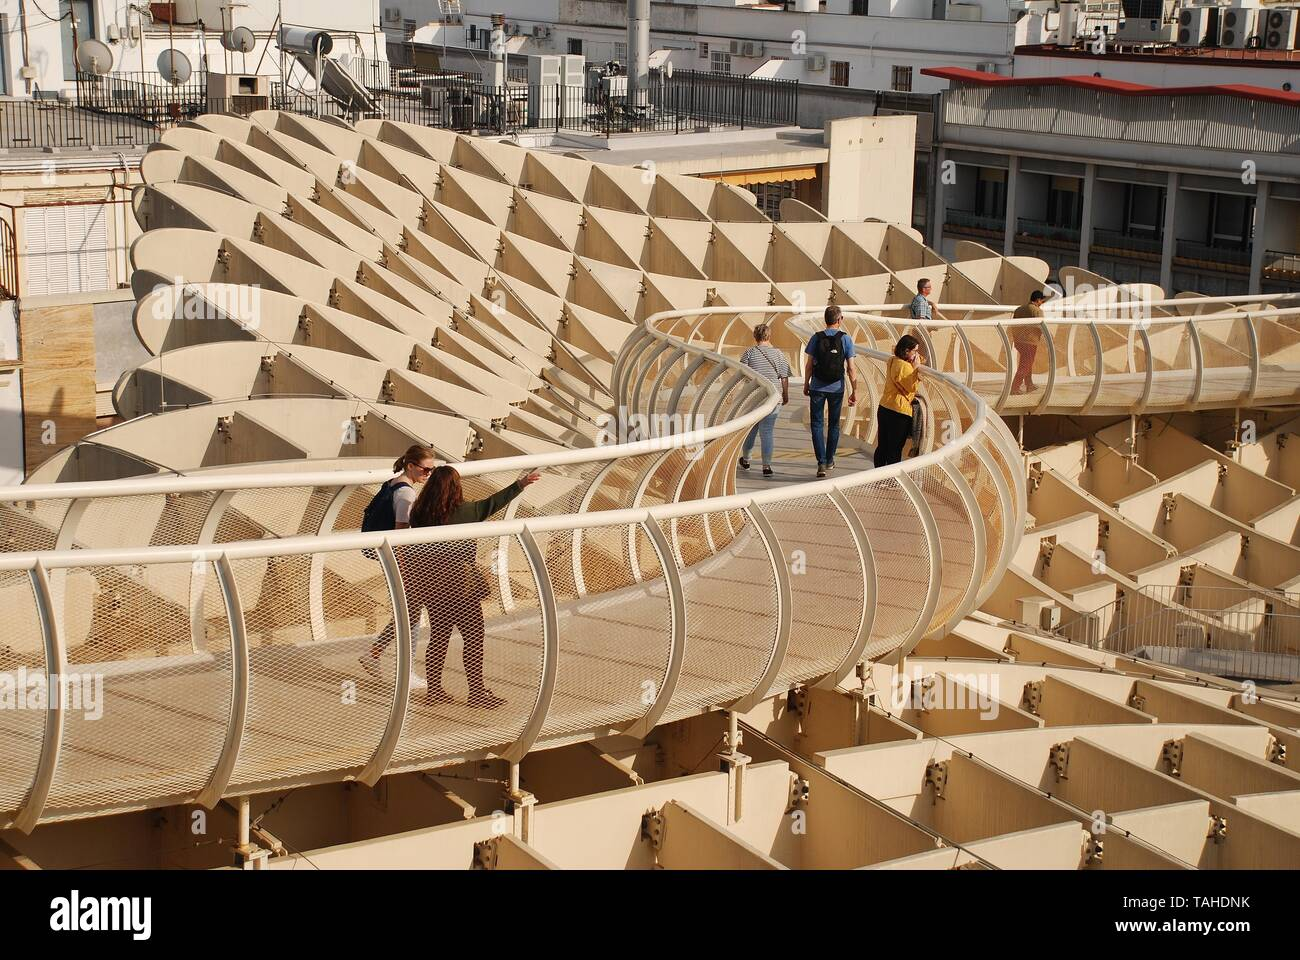 The walkway on the roof of the Metropol Parasol in Seville, Spain on April 2, 2019. Completed in 2011, the structure is known as Las Setas de Sevilla. Stock Photo